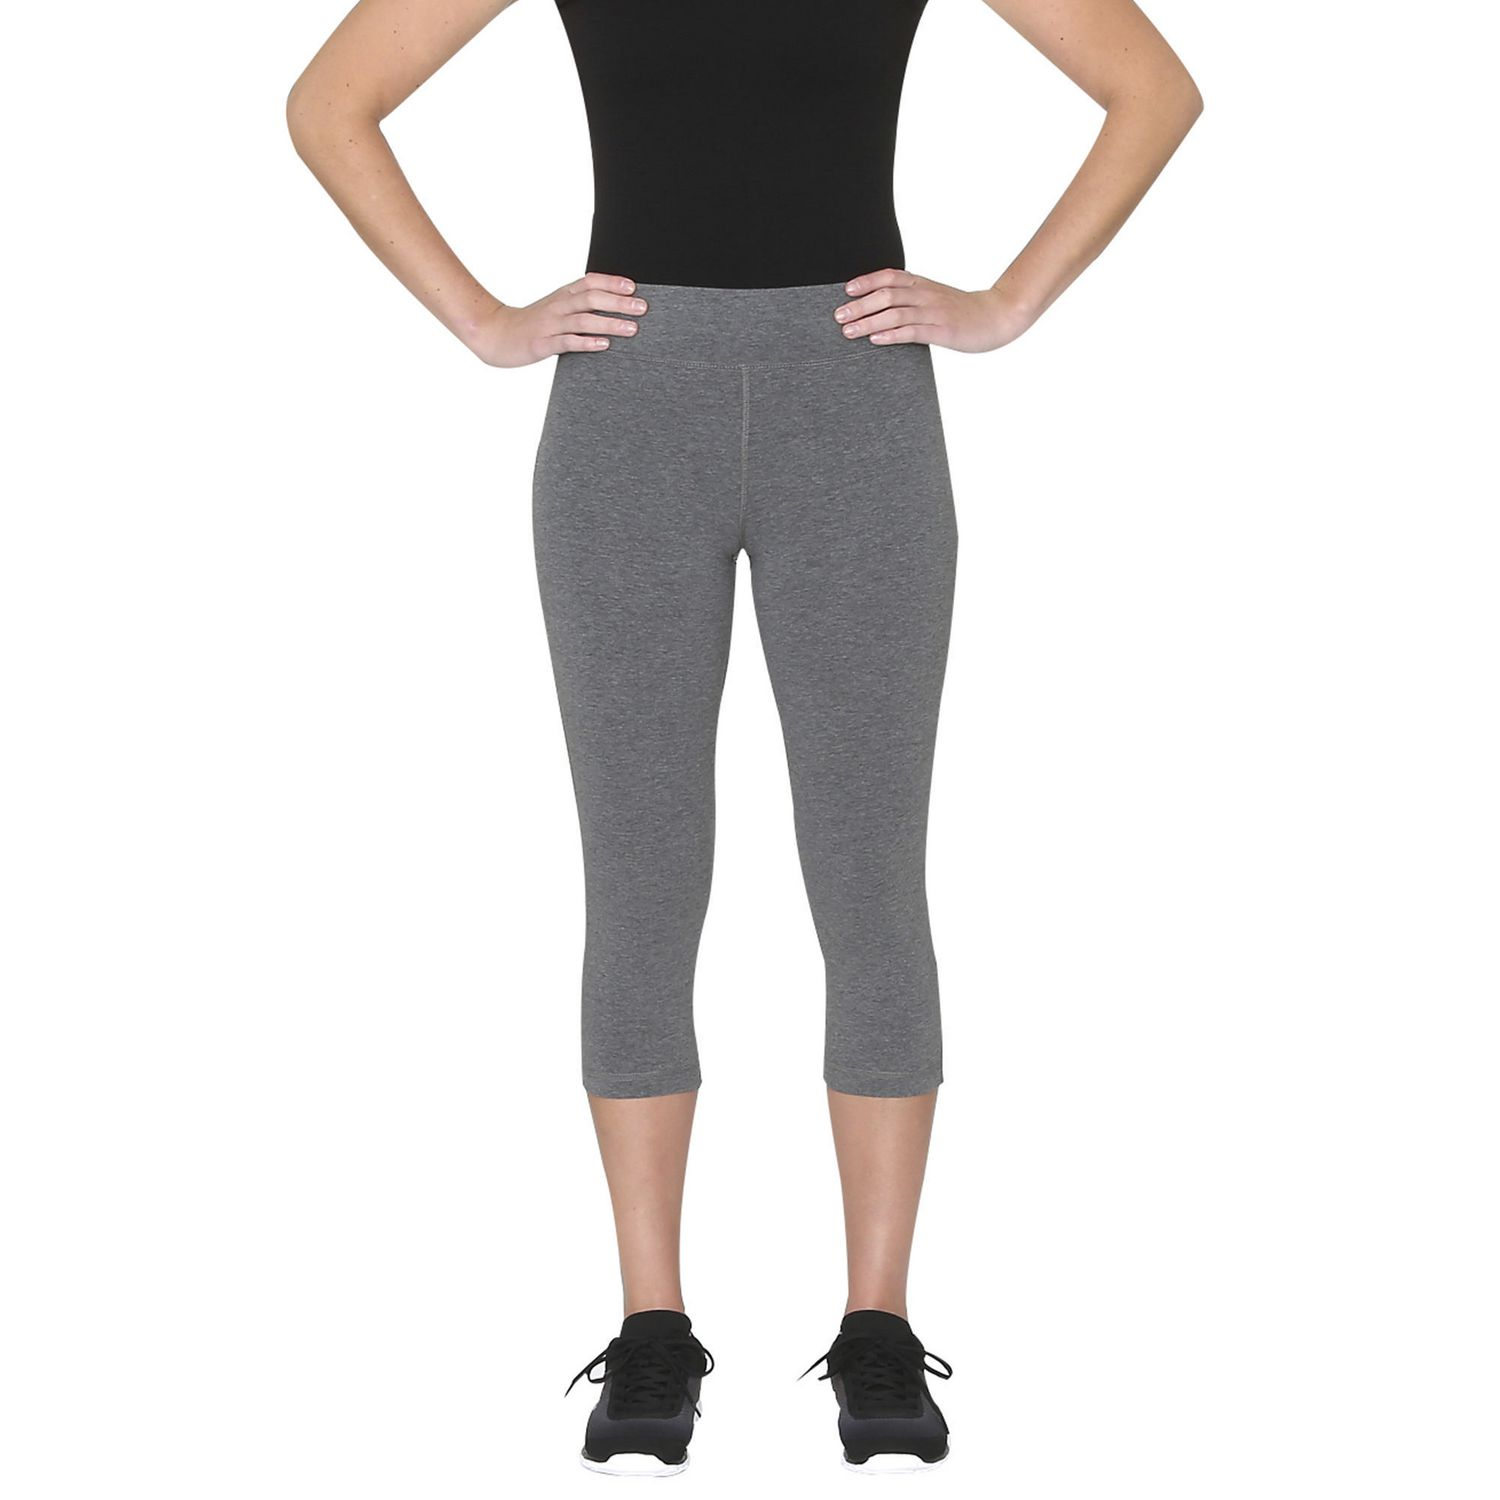 c636fb854df5c Athletic Works Women's Capri Leggings - image 1 of 3 zoomed image